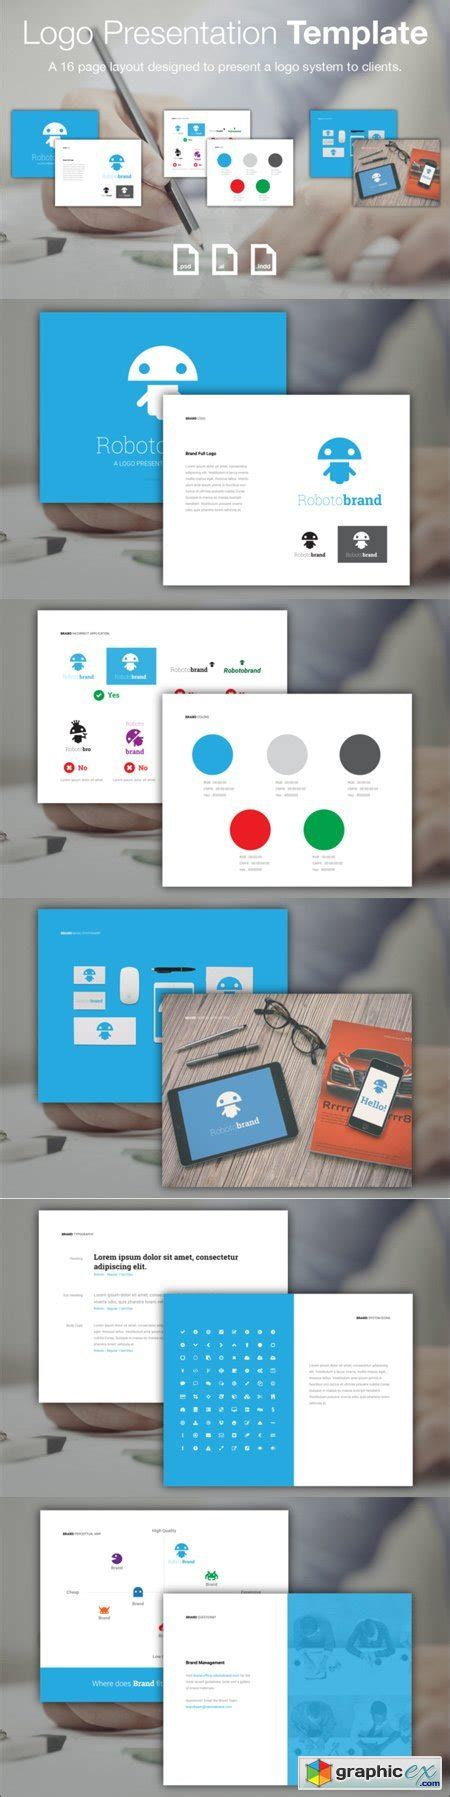 logo presentation template 187 free download vector stock